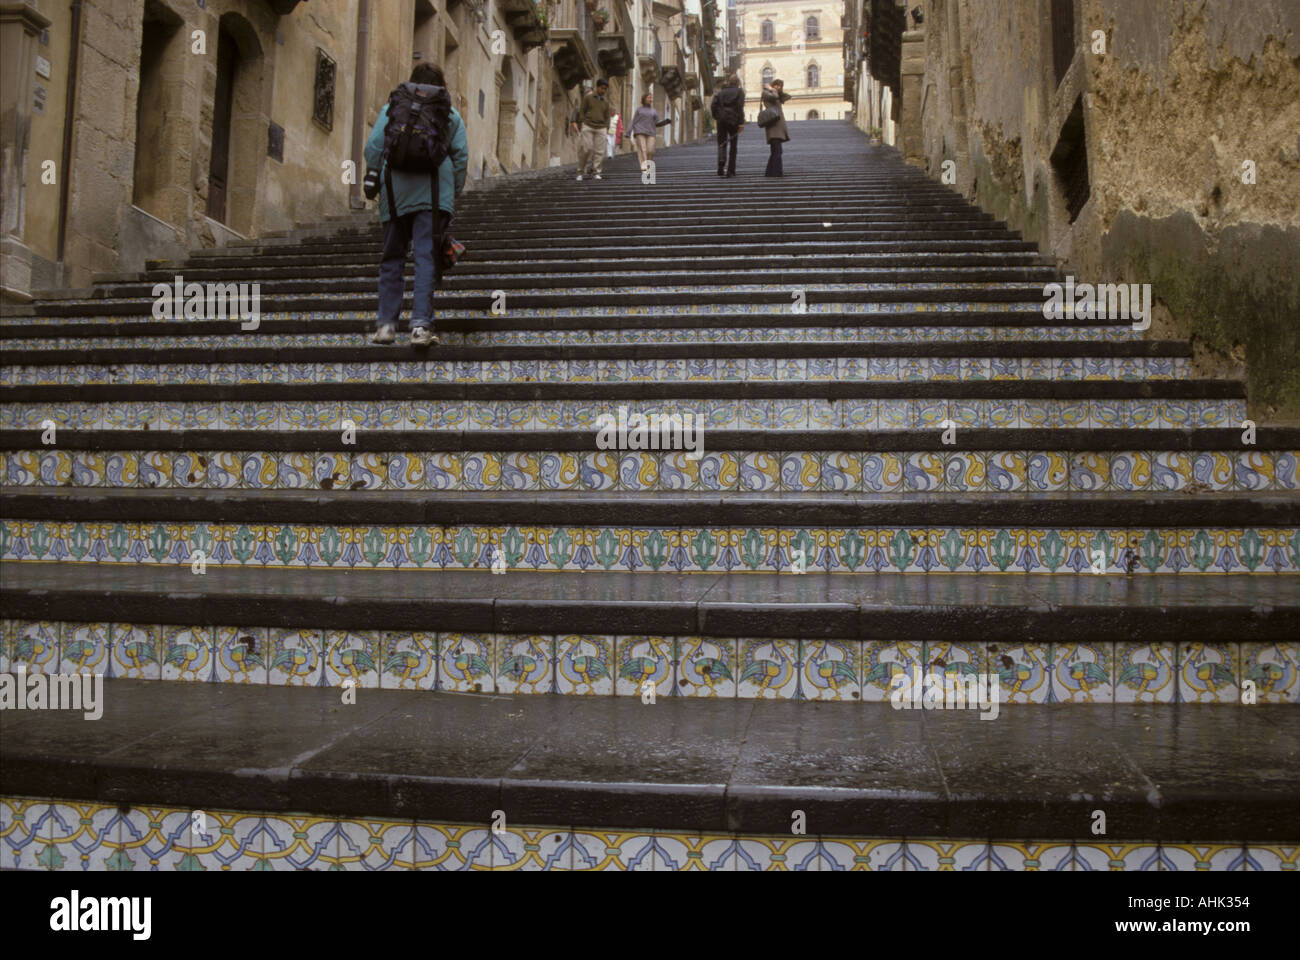 Large stair with ceramic tile ornaments in city caltagirone called large stair with ceramic tile ornaments in city caltagirone called ceramic city island sicily italy dailygadgetfo Choice Image